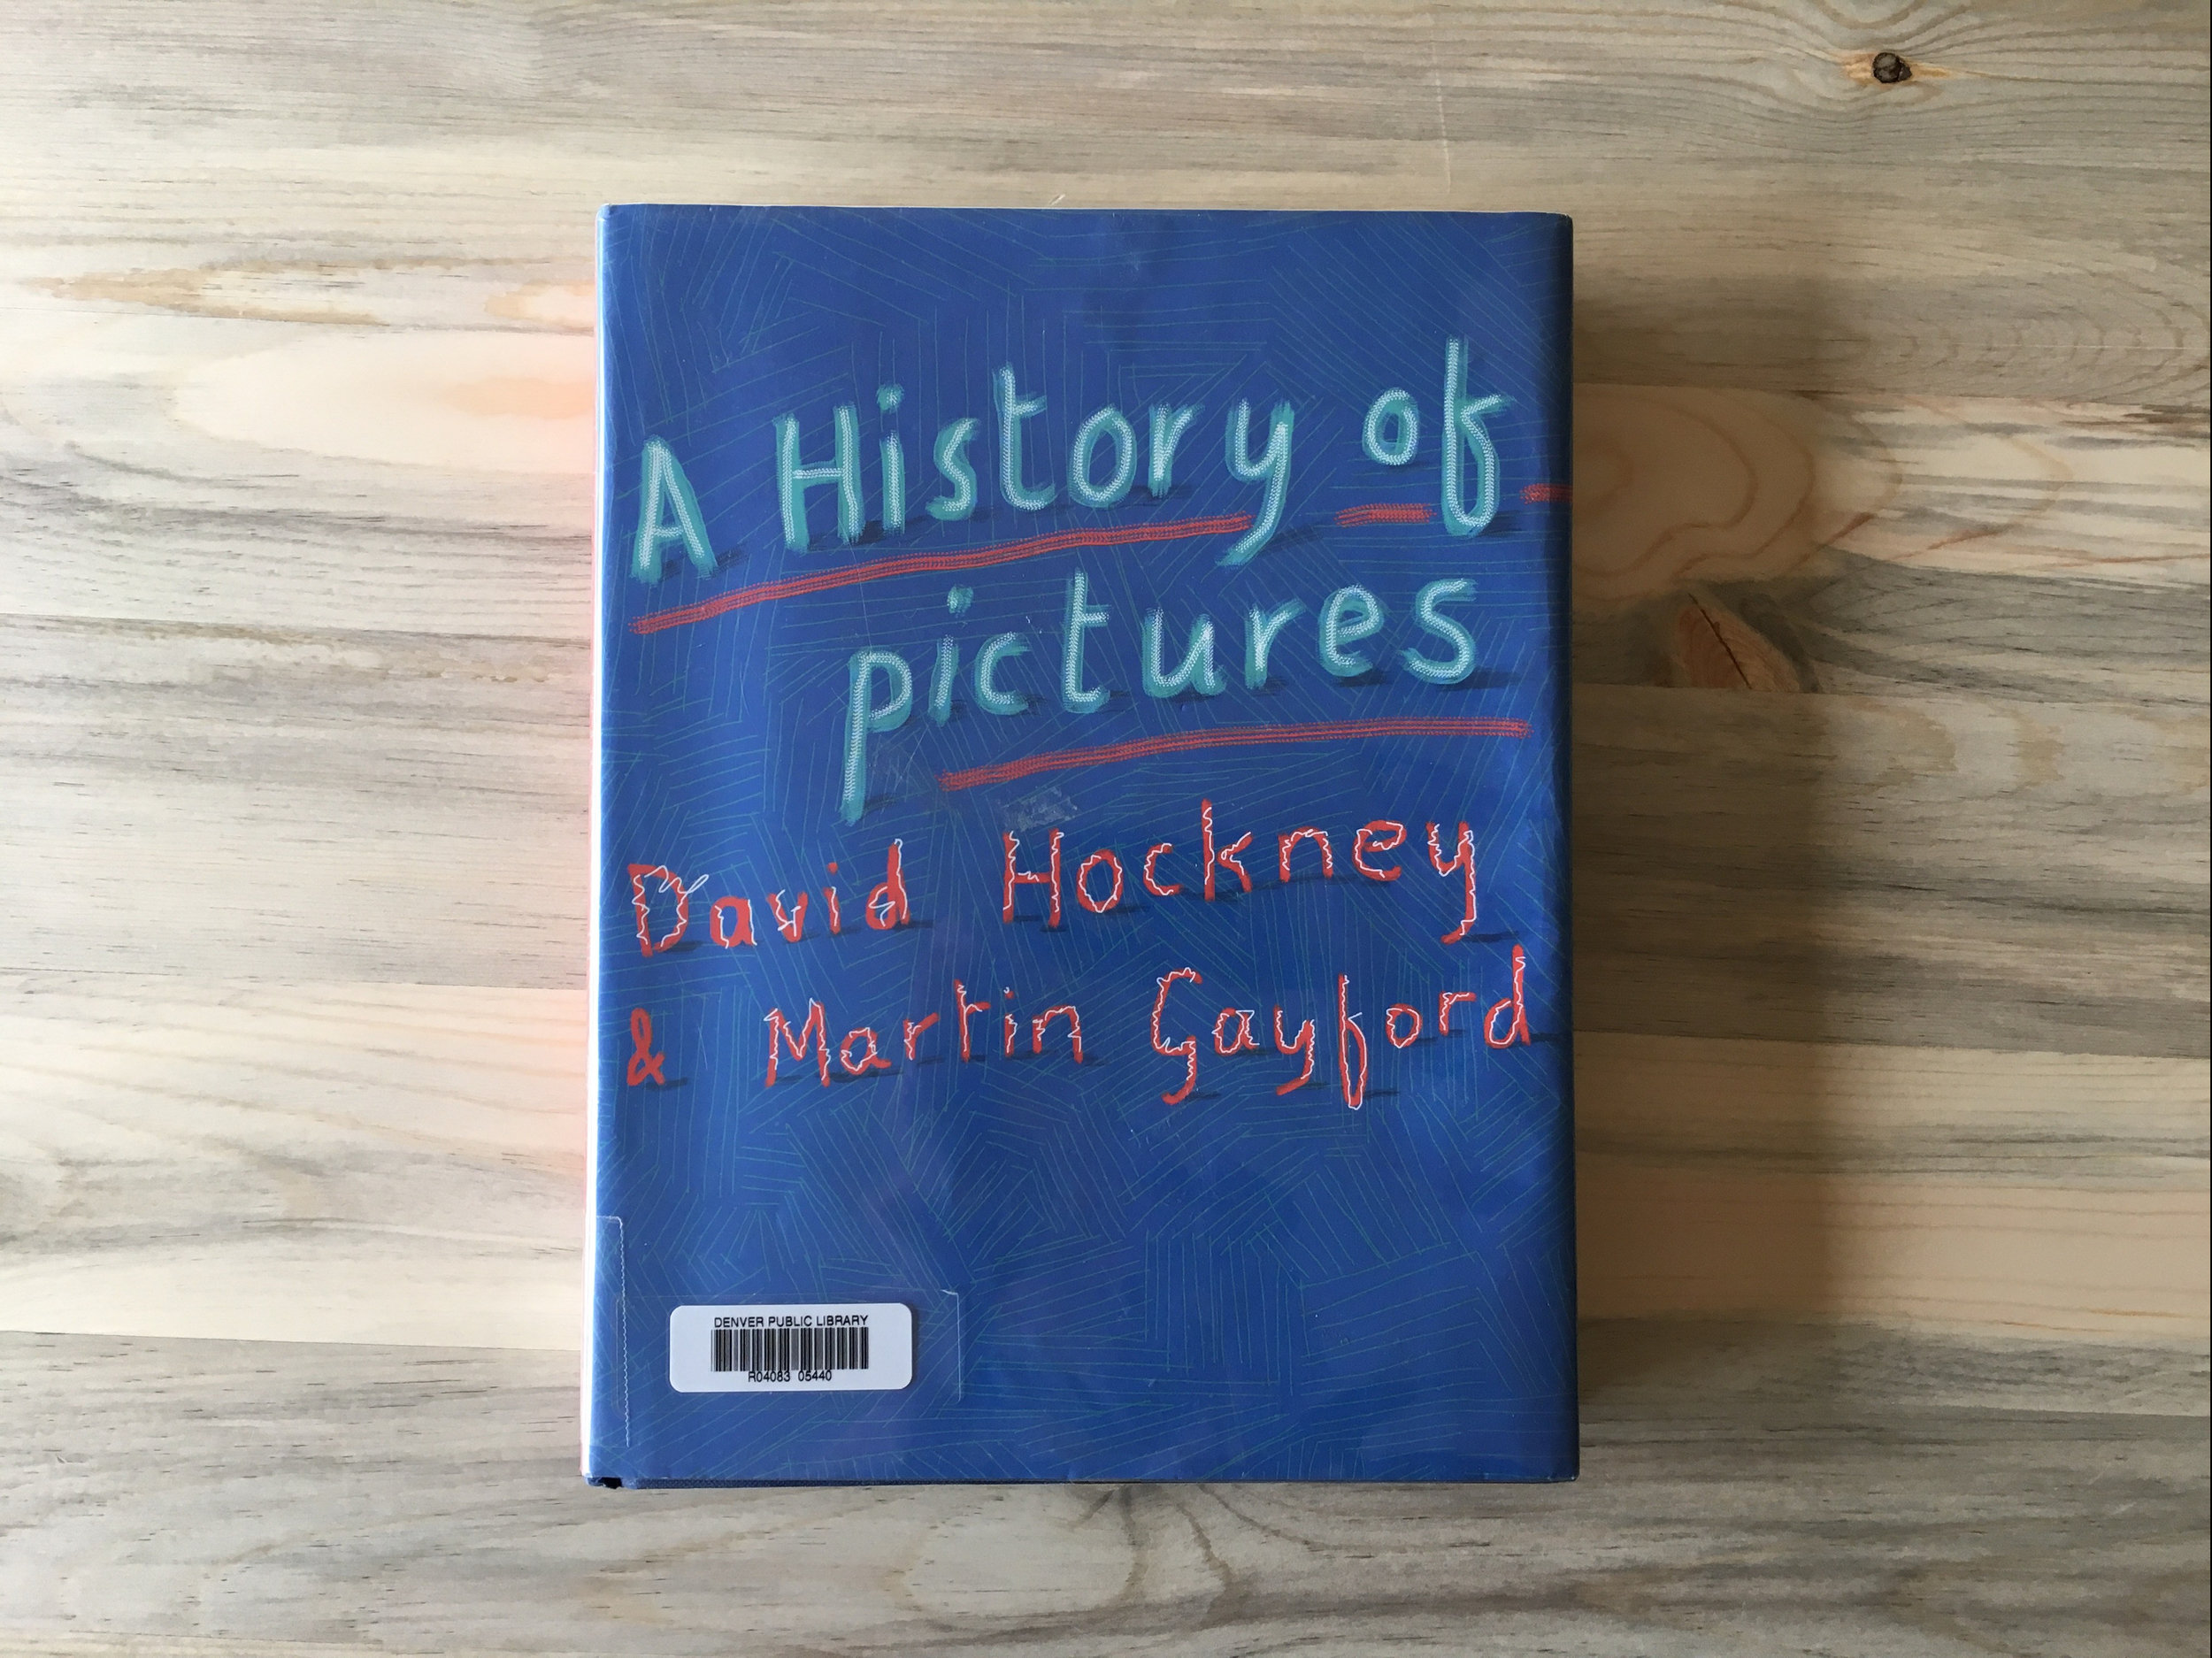 David Hockney and Martin Gayford, A HIstory of Pictures